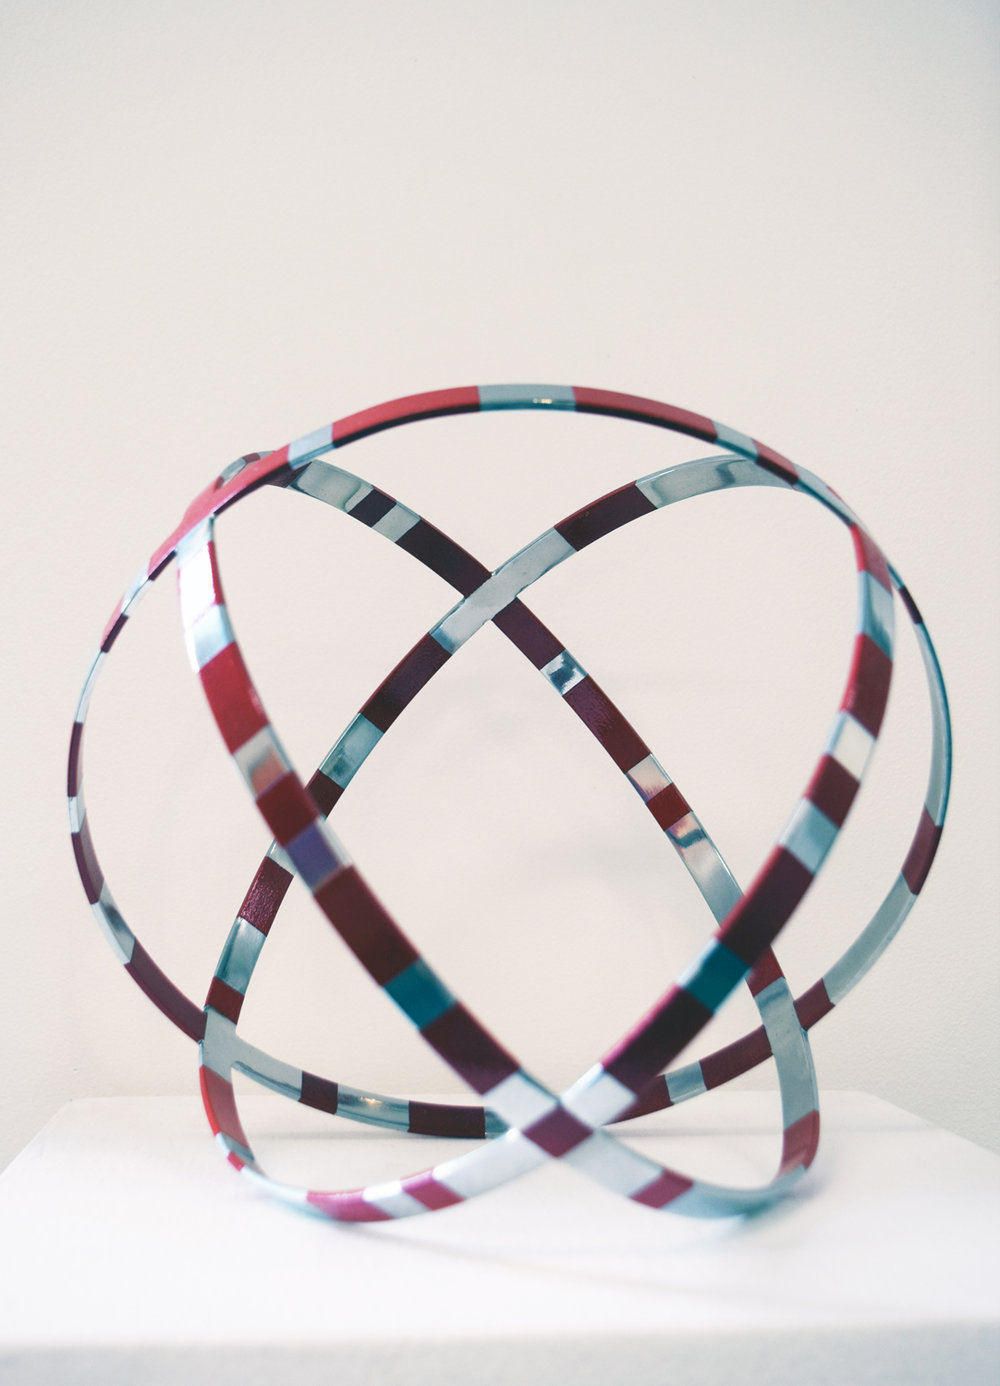 40. Angela McHarrie, 'Mean Time', 2011, stainless steel, enamel paint, NFS